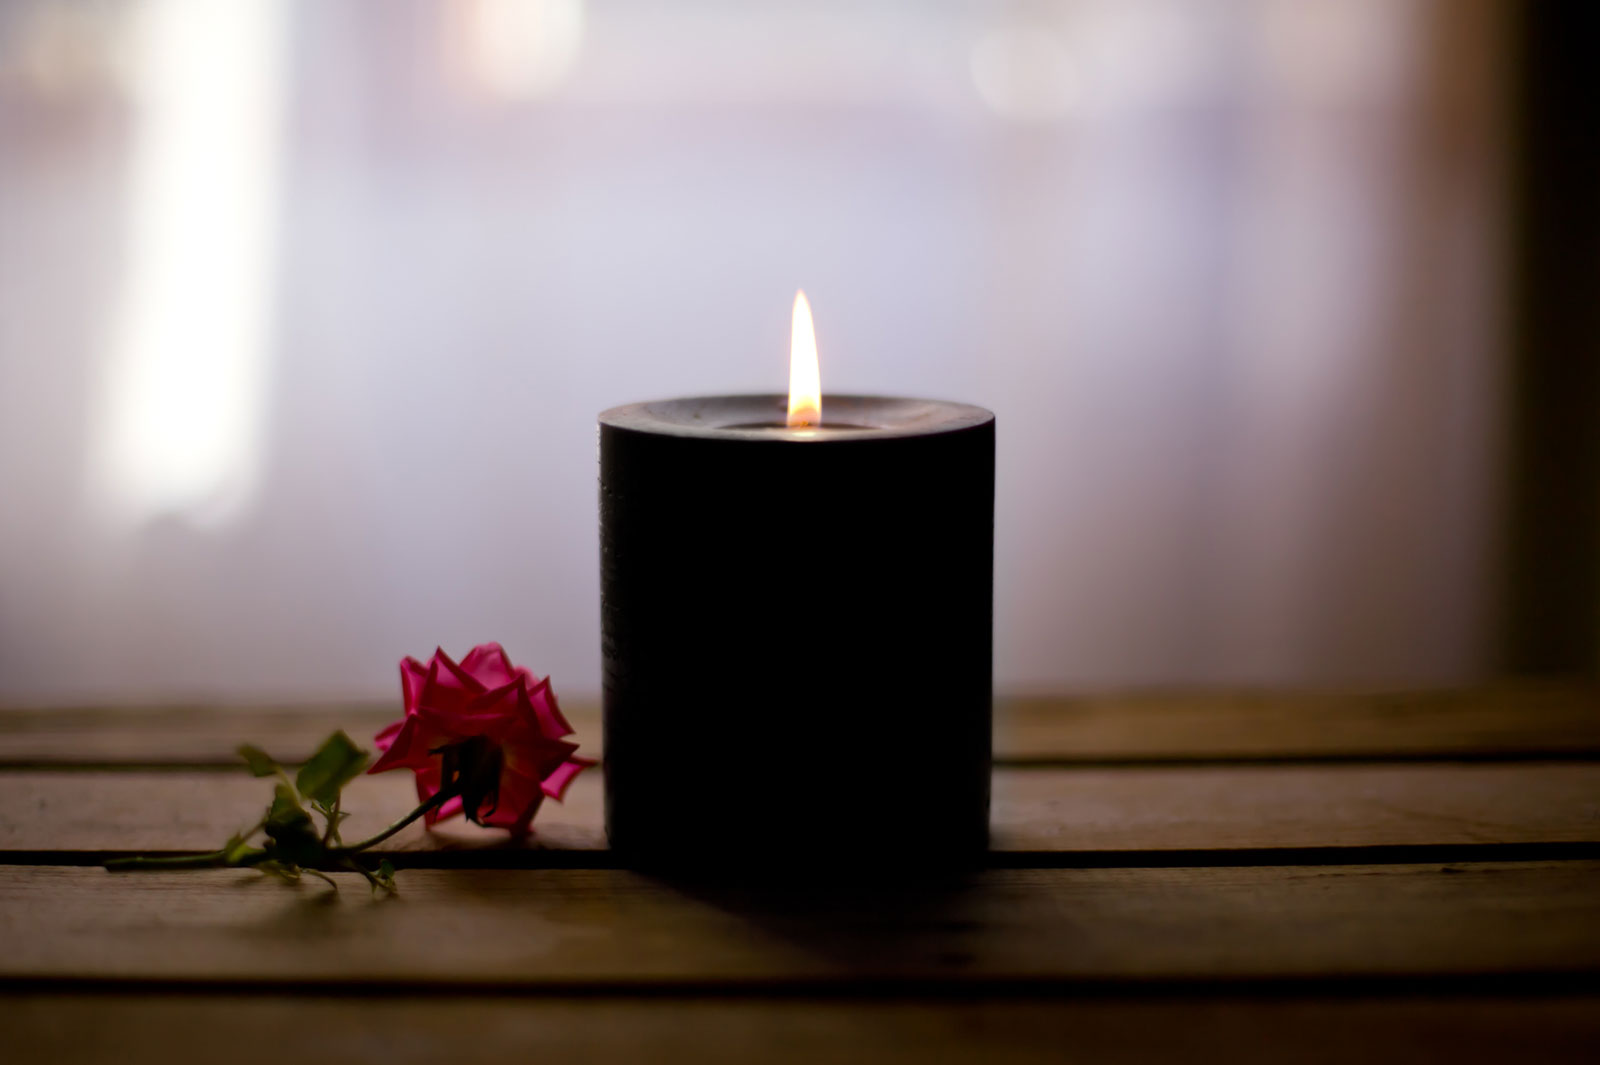 Uses for Black Candles From Décor to Magic | LoveToKnow